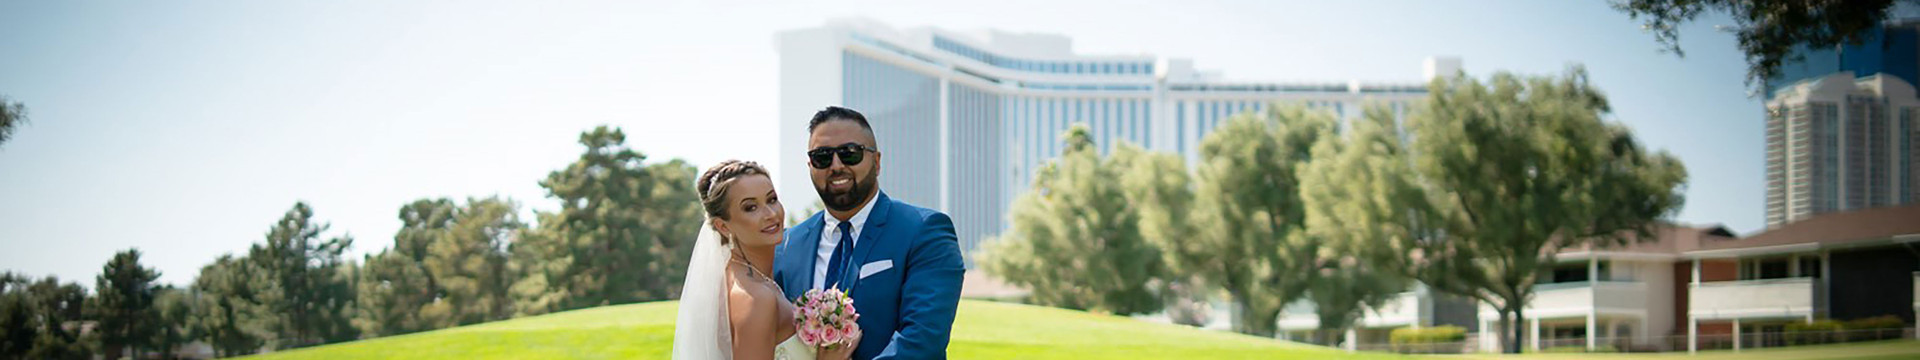 Best Wedding Venues In Las Vegas | Just Married In Vegas